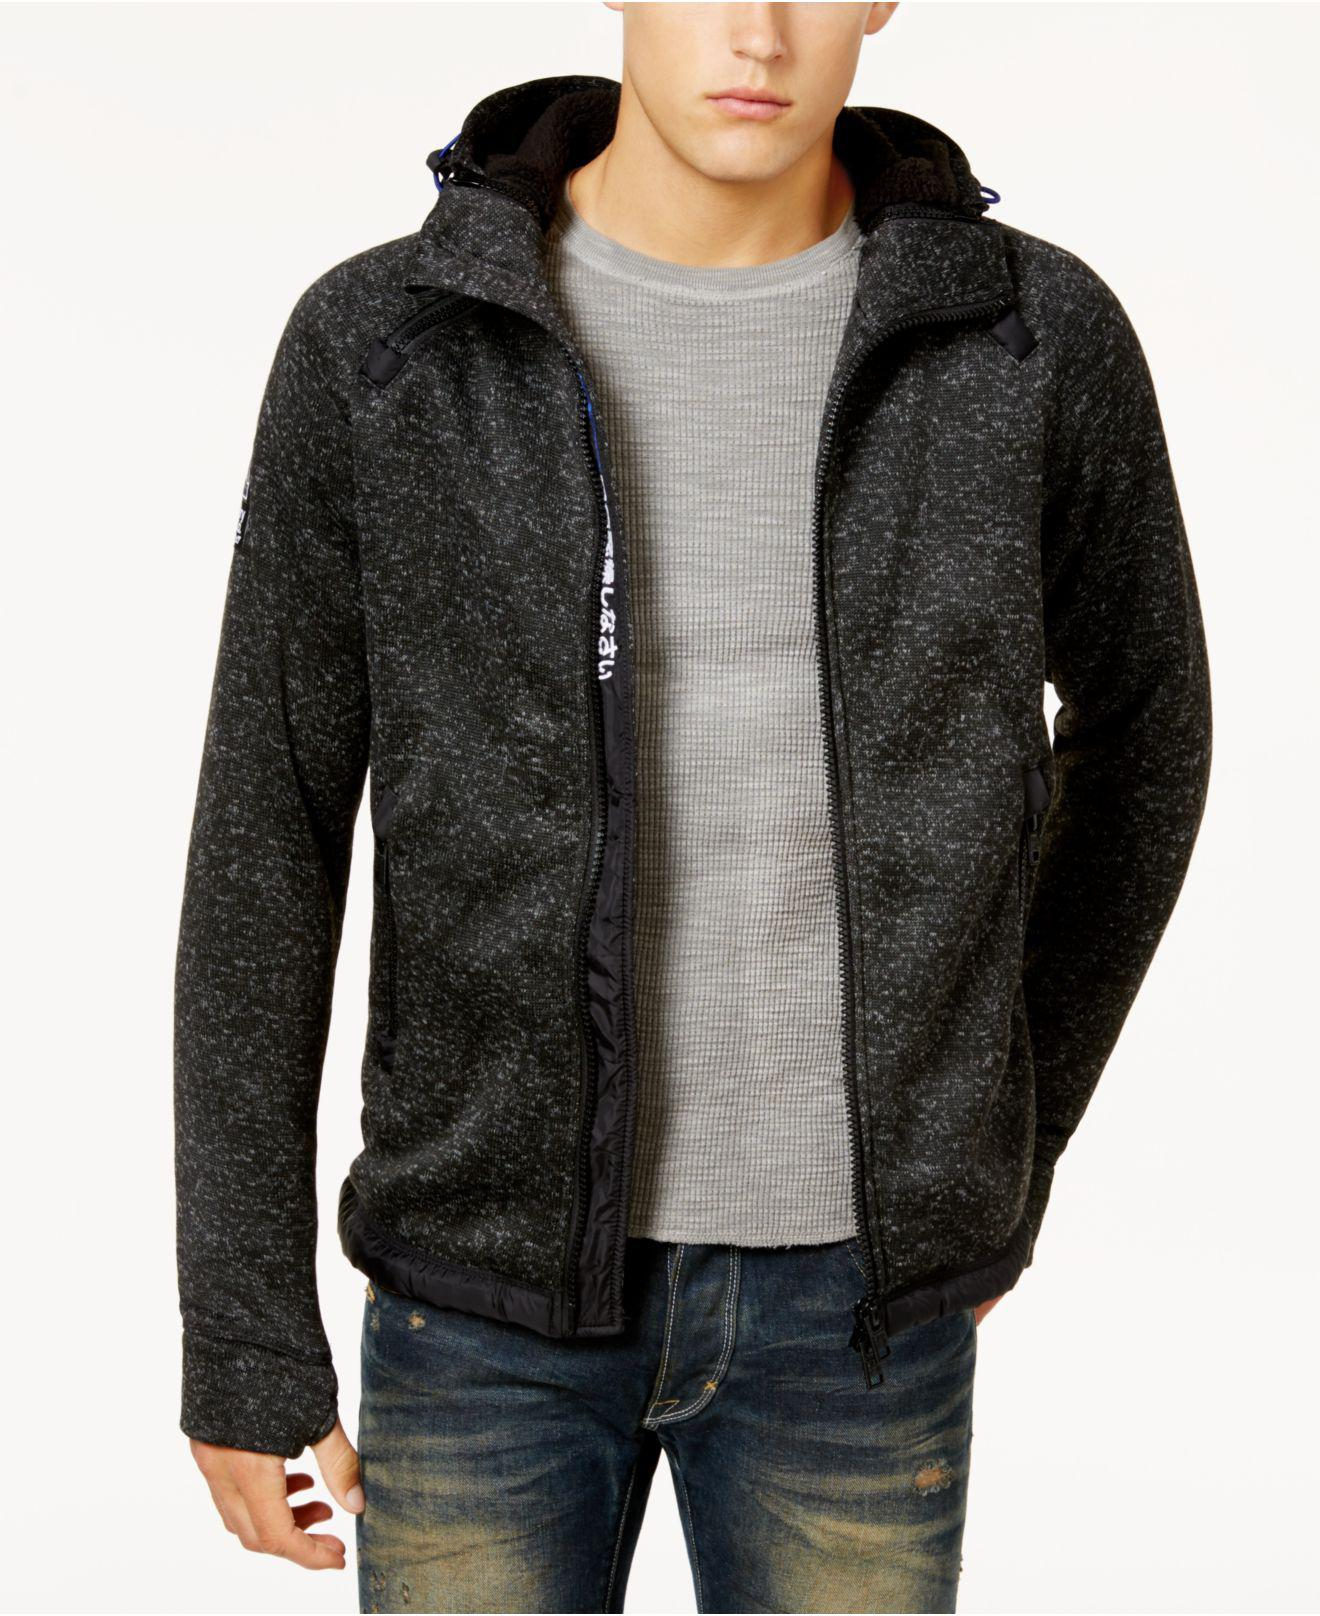 We have the biggest selection of men's sweaters from your favorite brands at the lowest prices | EMS Stores. Men's Clothing Shirts Hoodies & Sweatshirts Sweaters Pants Men's Hooded Long-Sleeve Sweater $ $ Compare. Clearance.